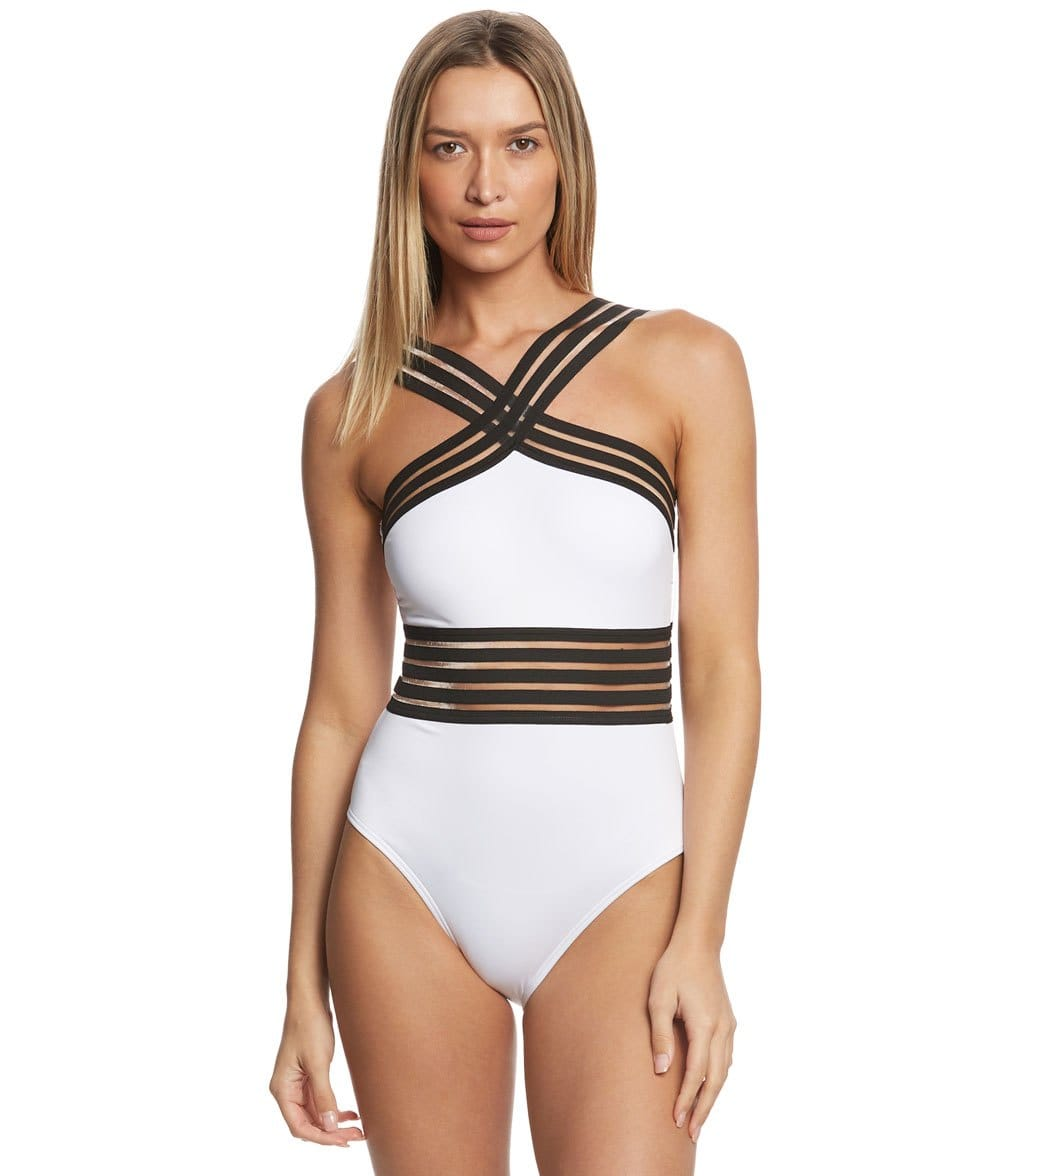 7bbc1a4d7f Kenneth Cole Stompin' In My Stilettos High Neck One Piece Swimsuit at  SwimOutlet.com - Free Shipping